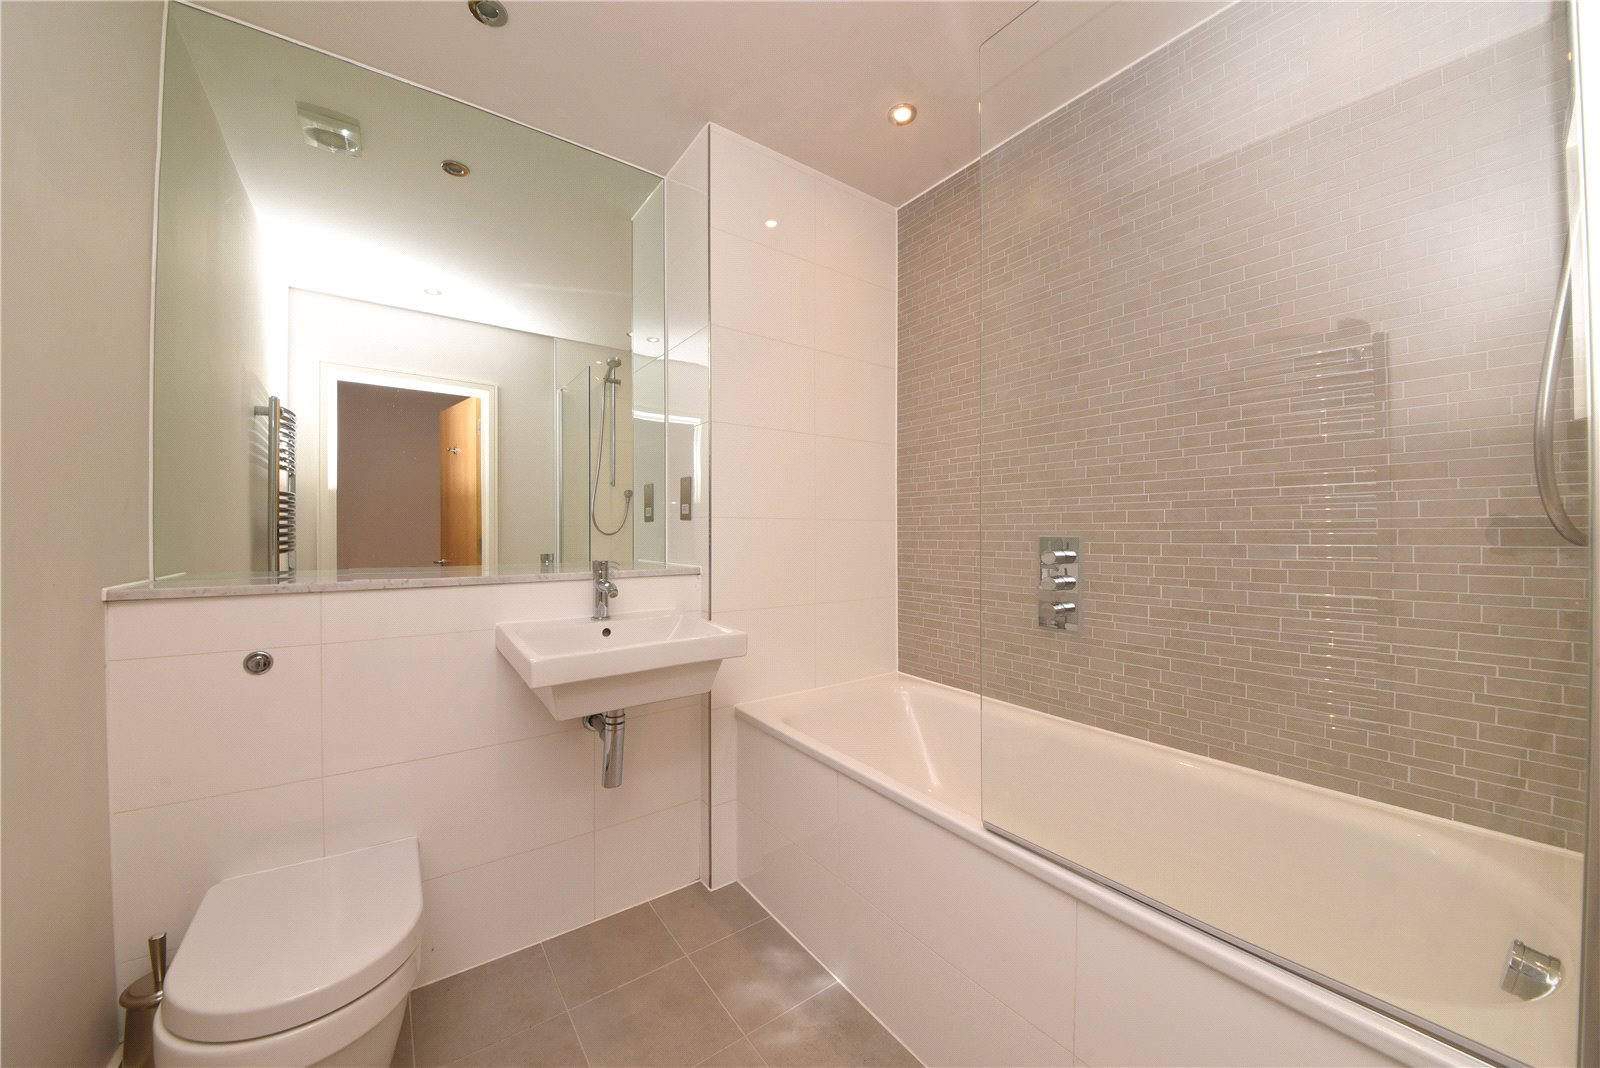 2 bed apartment for sale in Mill Hill East, NW7 1ND  - Property Image 10